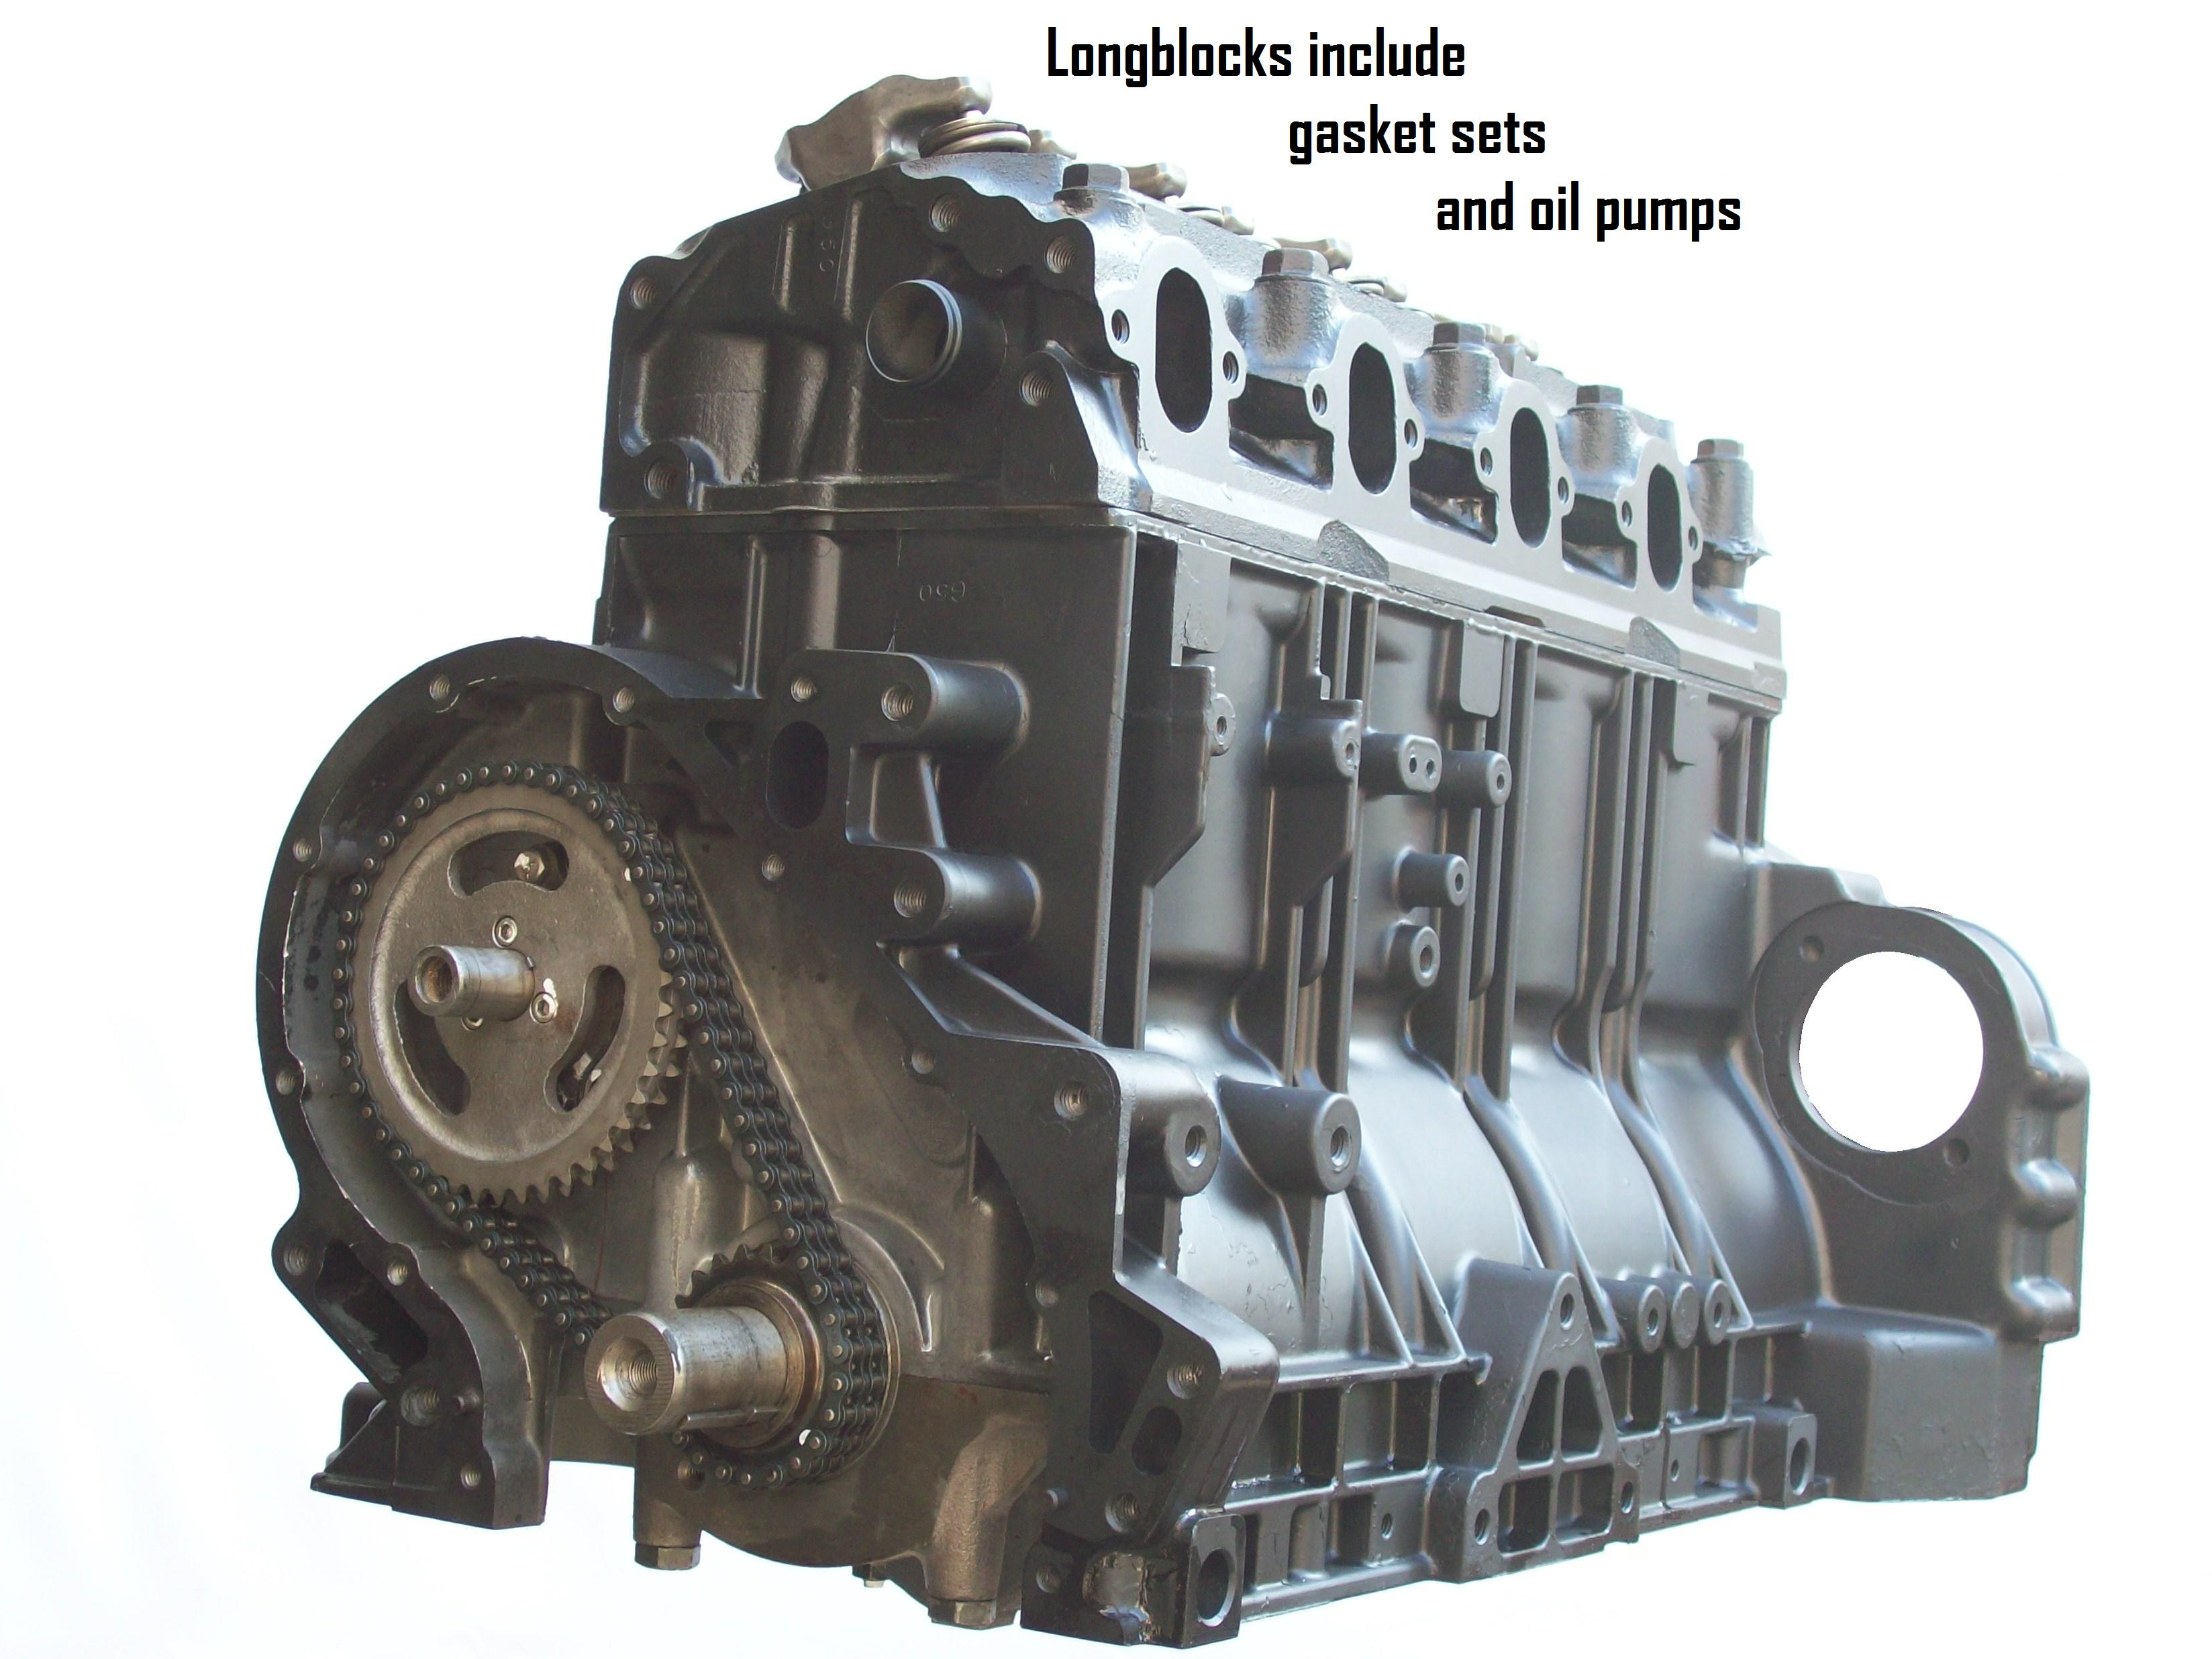 3.7L Mercruiser marine remanufactured engines inboard Electrical Wiring Diagrams at gsmx.co